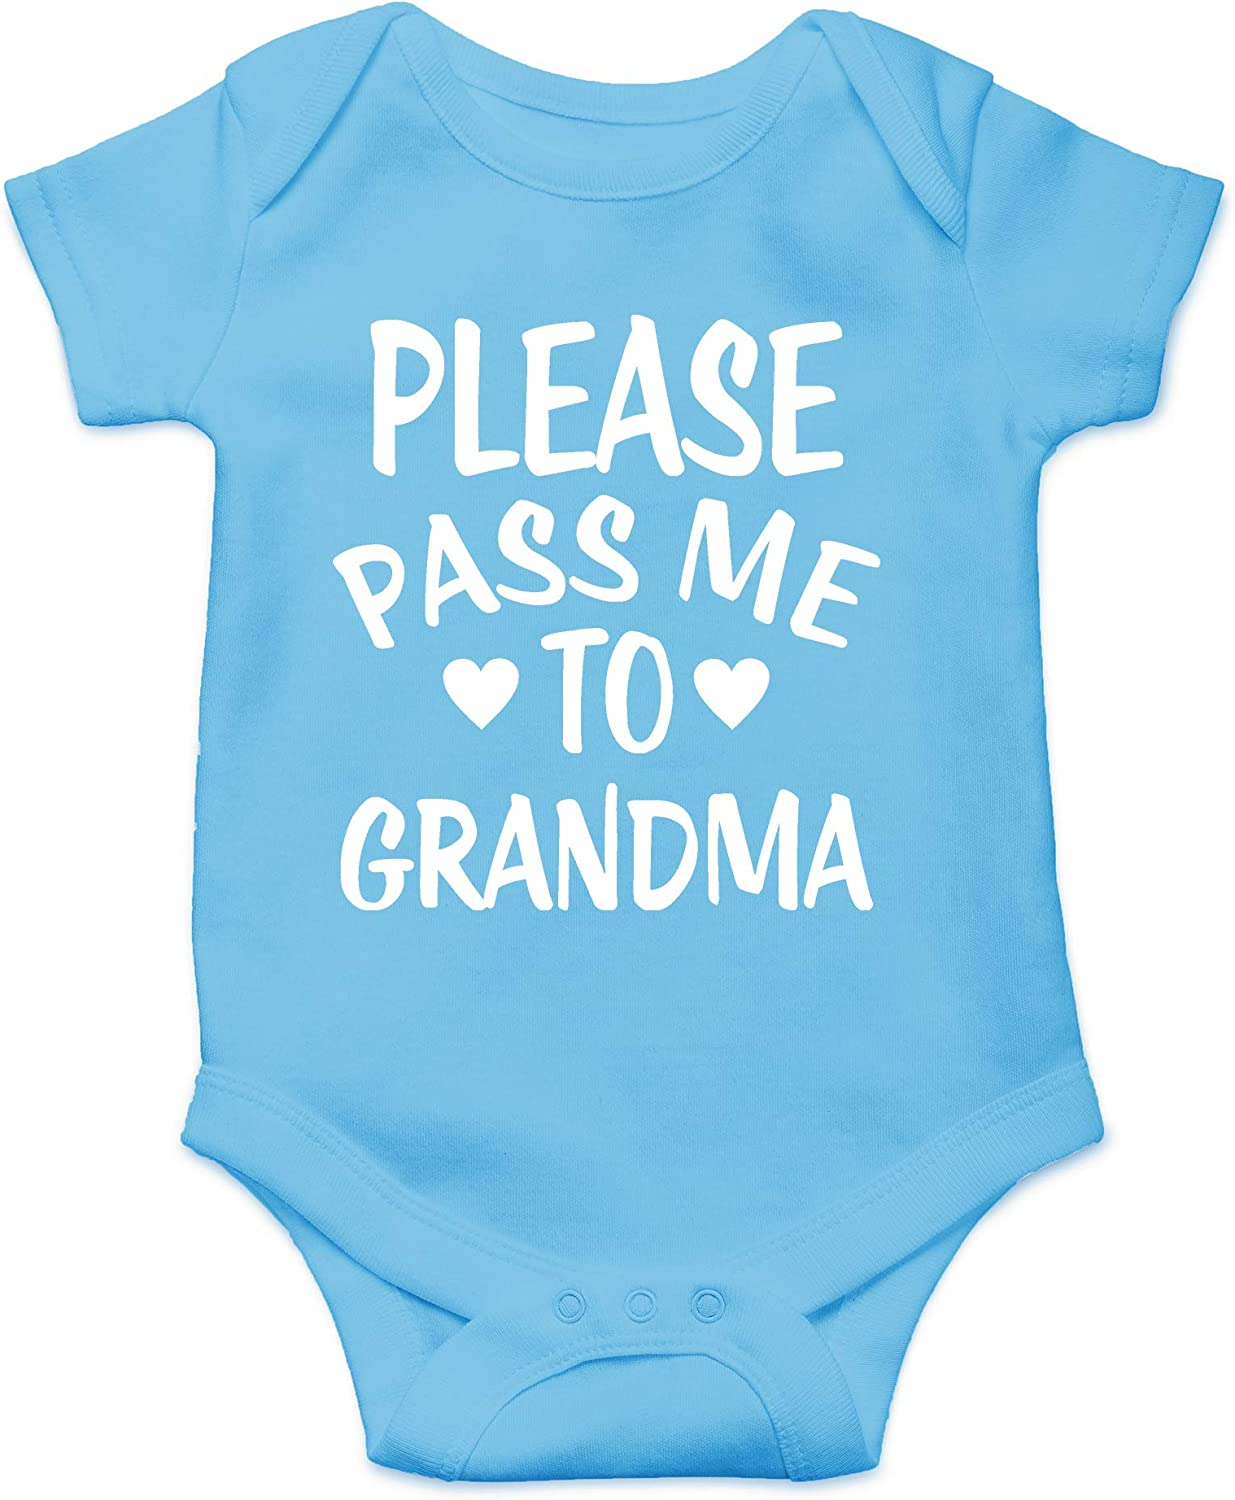 Baby Announcement Somebody Loves Me Gender Reveal Baby Bodysuit 50 States